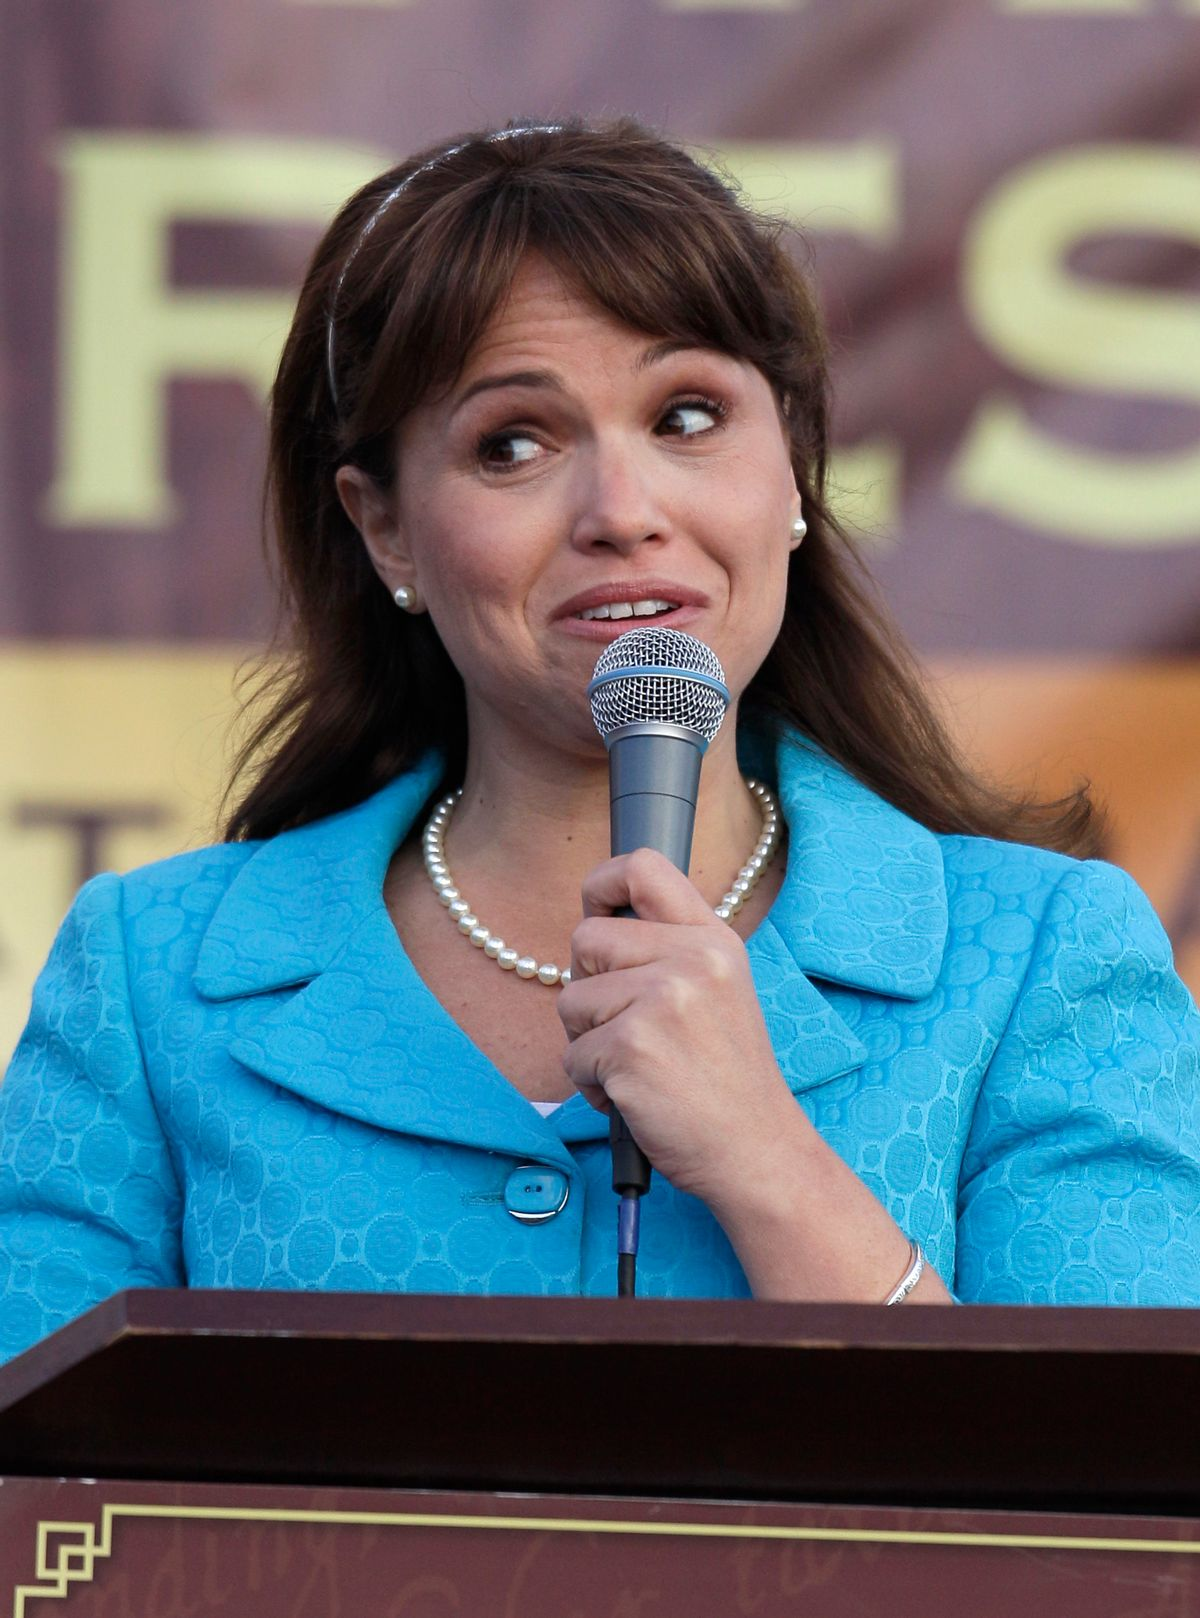 Delaware Republican Senate nominee Christine O'Donnell during Tea Party Express rally, Sunday, Oct. 31, 2010, in Wilmington, Del. (AP Photo/Rob Carr) (Rob Carr)